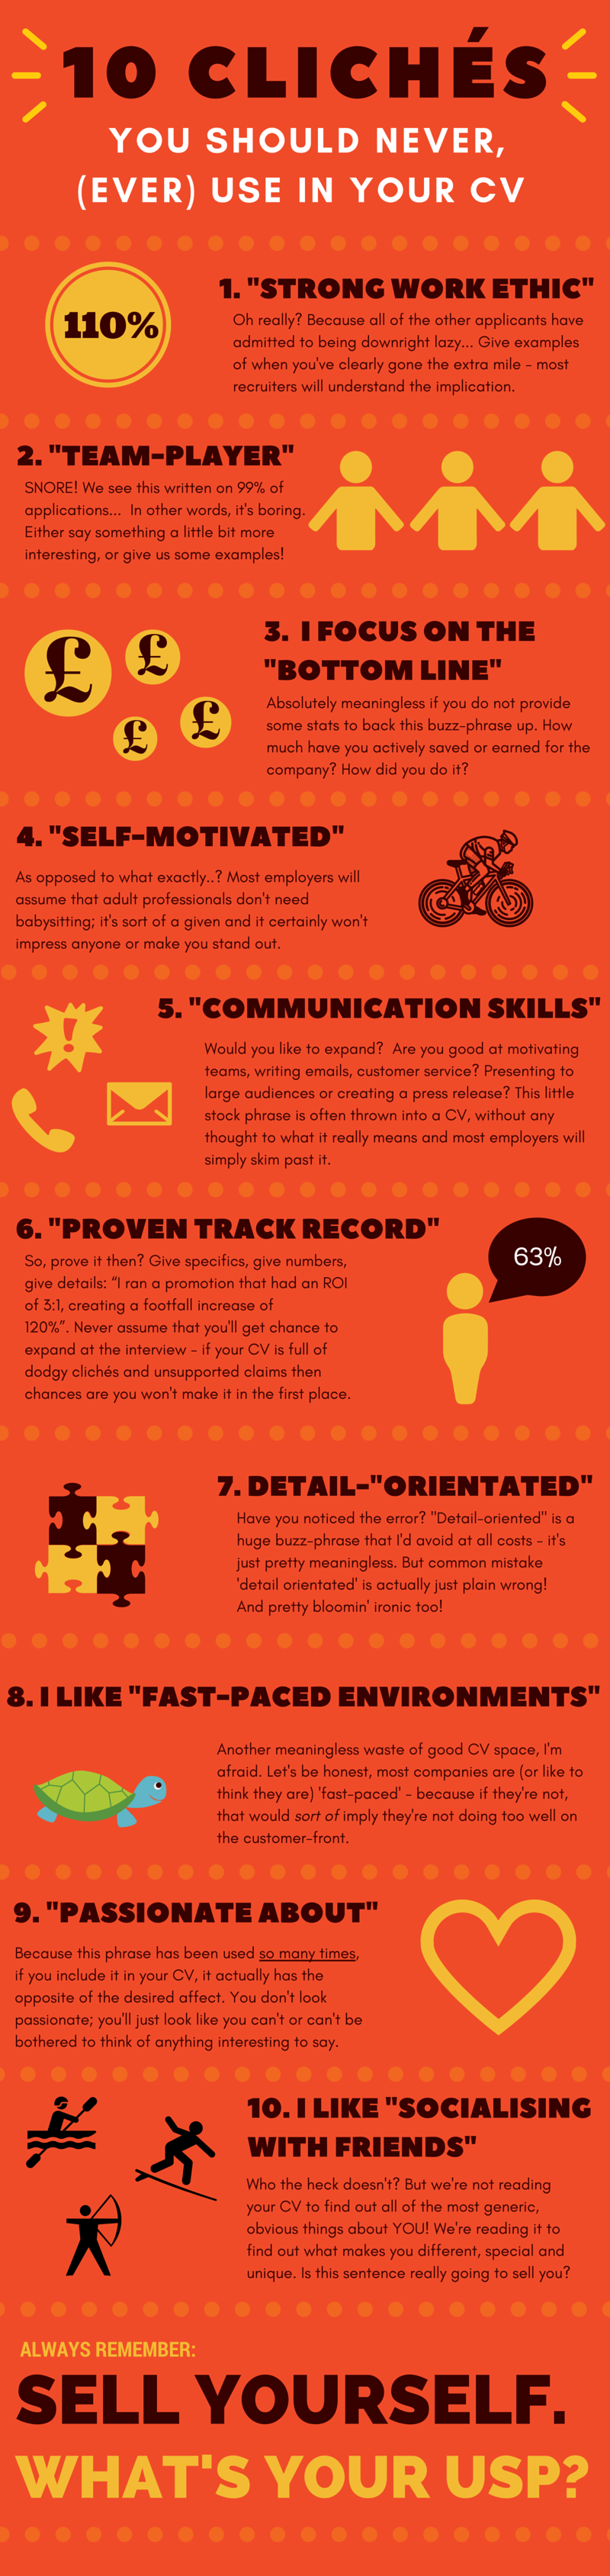 10 Clichés You Should Never (Ever) Use In Your CV